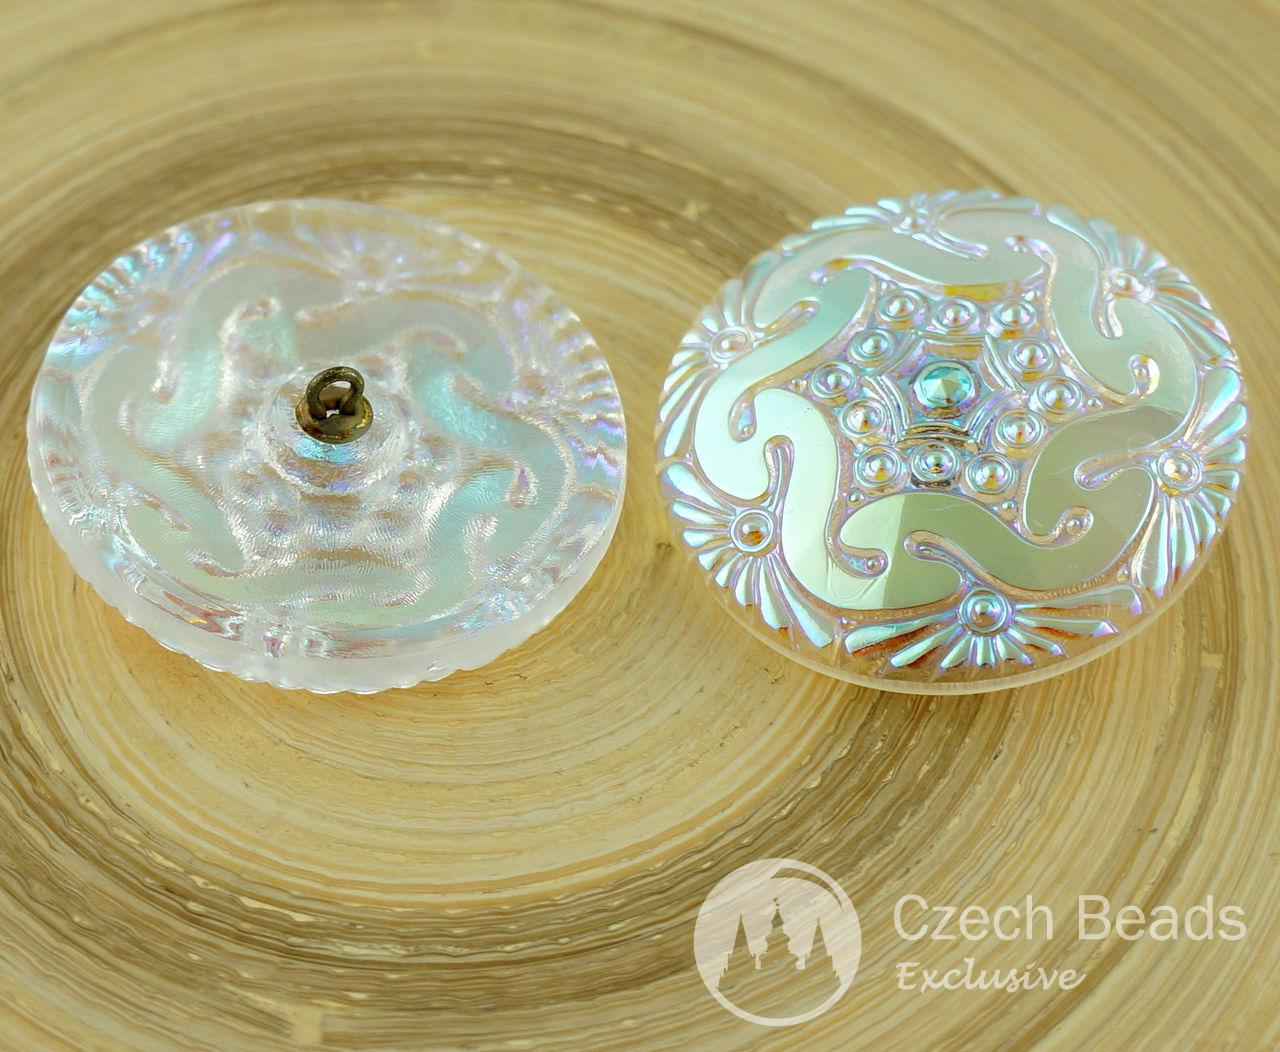 Handmade Czech Glass Buttons Large Crystal AB Flower Sun Glass Button Size 18, 40.5mm 1pc